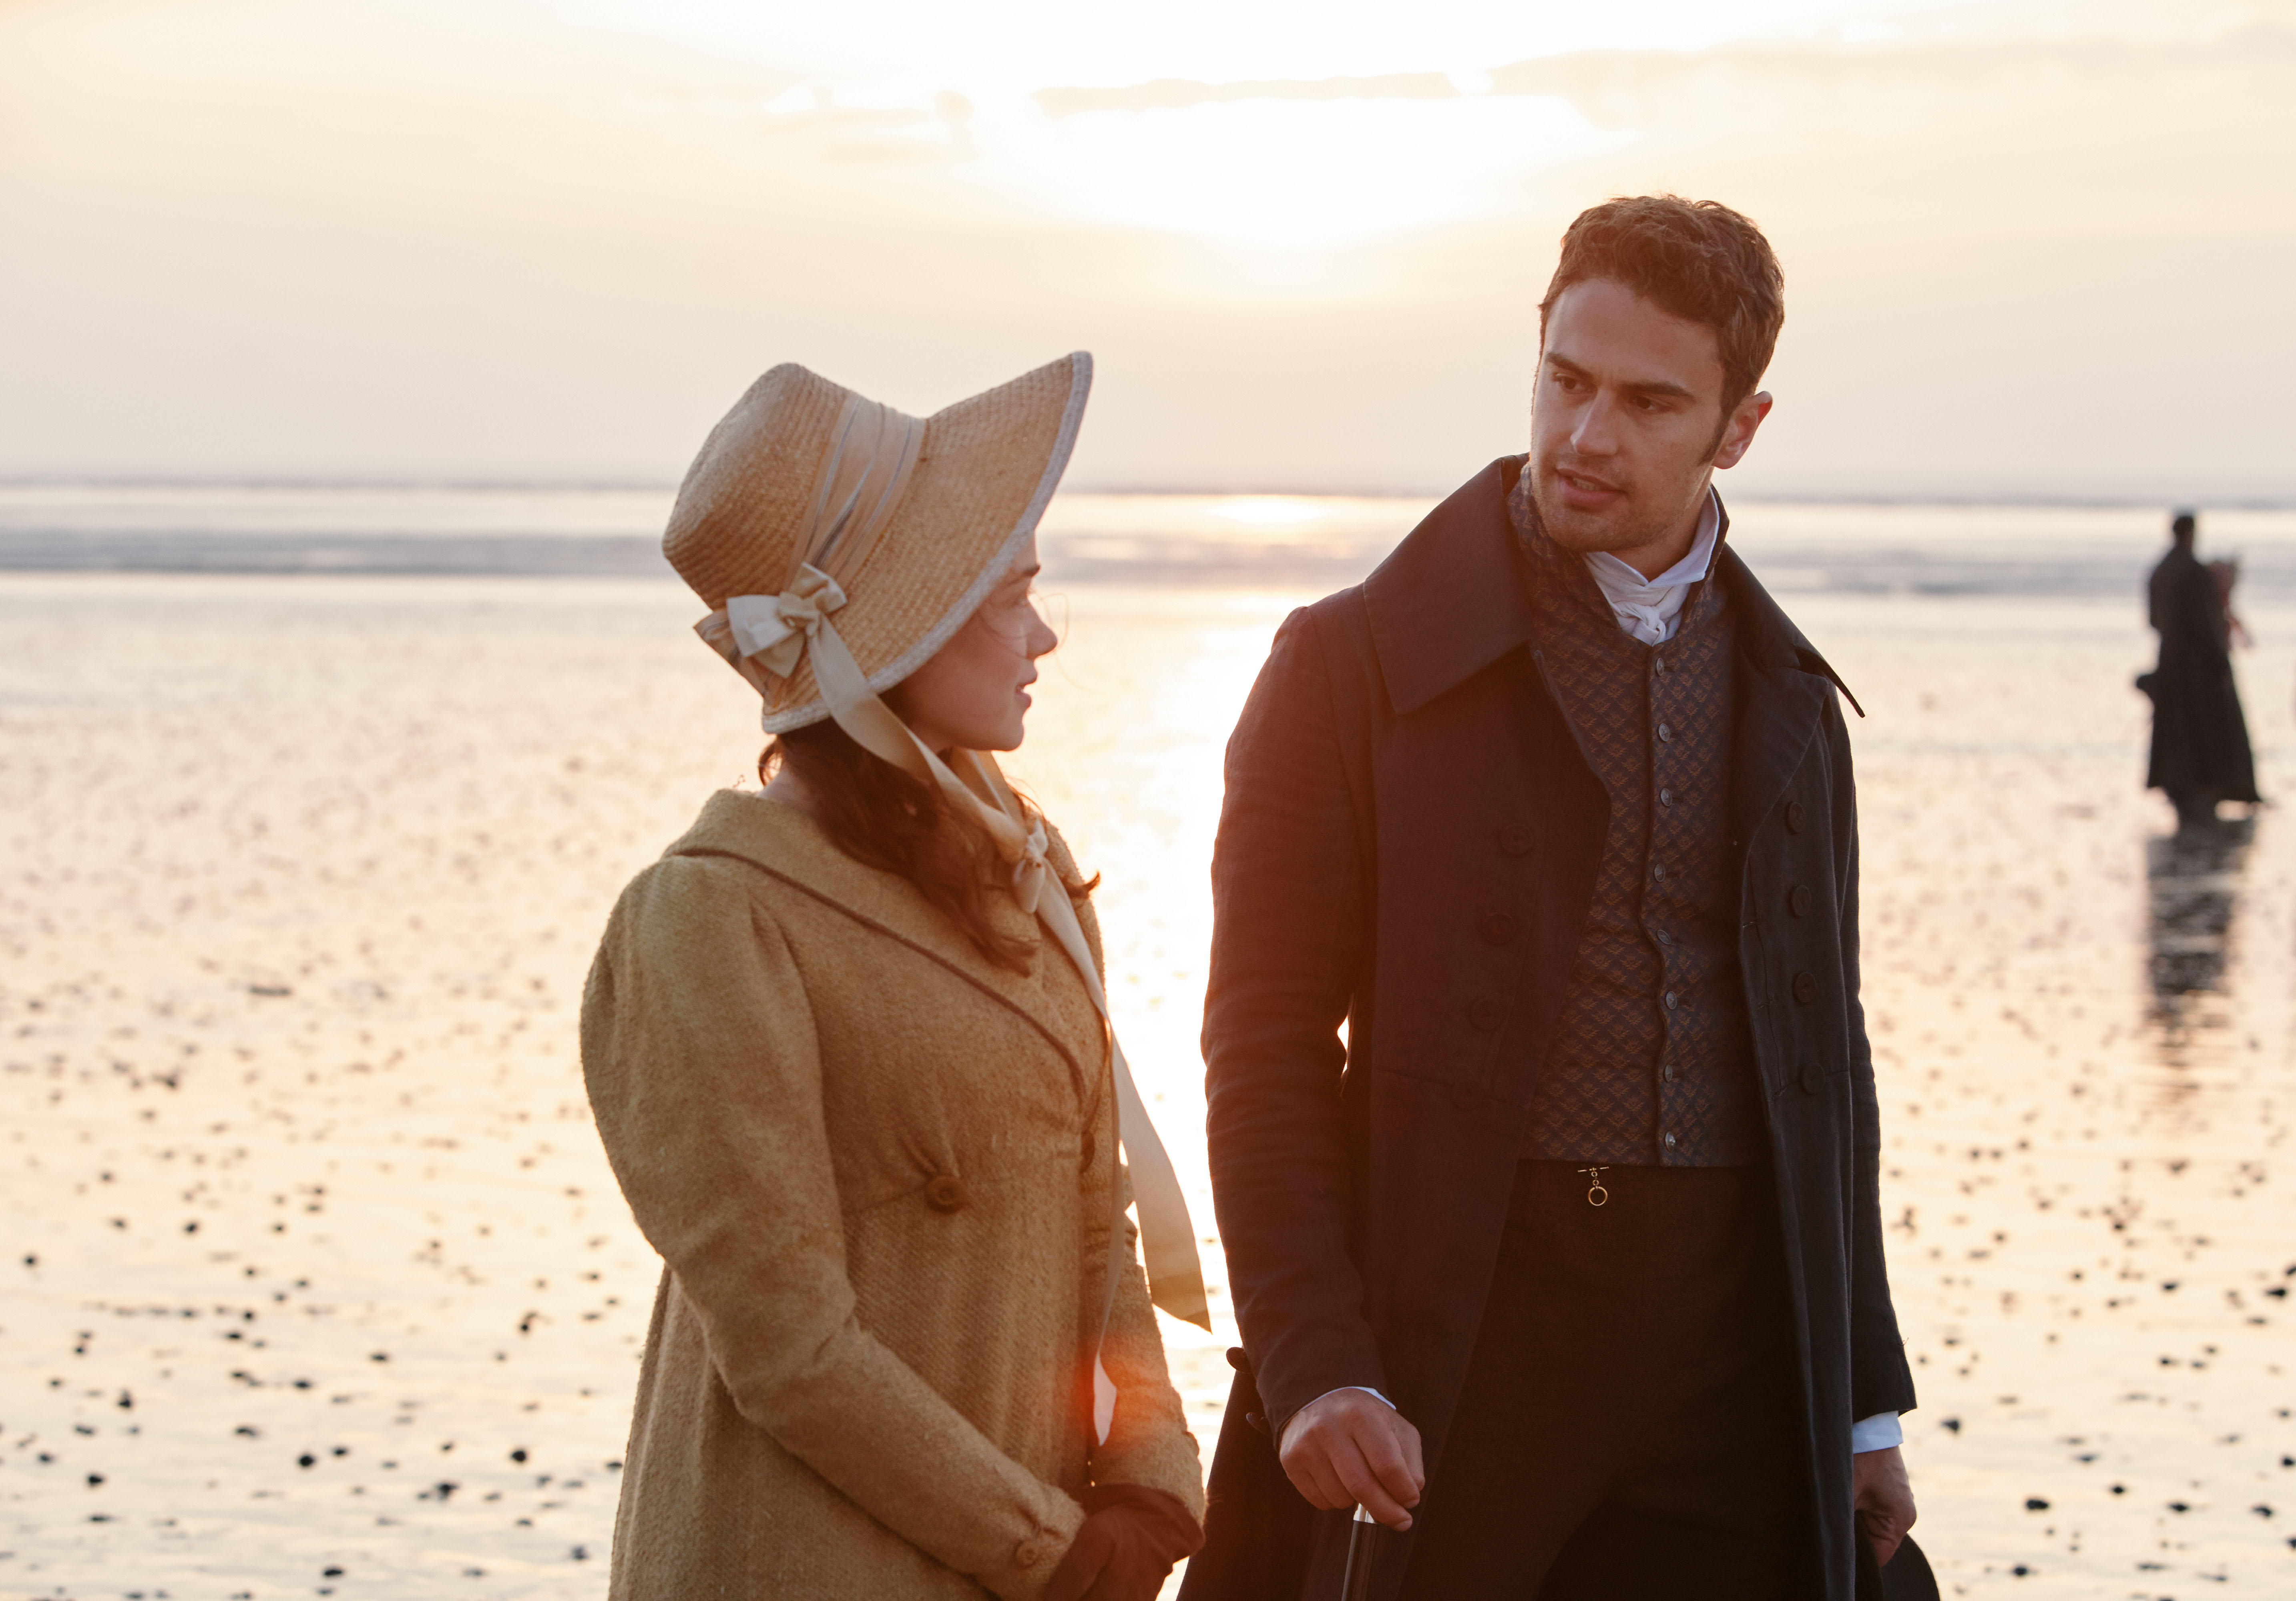 Charlotte and Sidney walking on the beach in 'Sanditon'